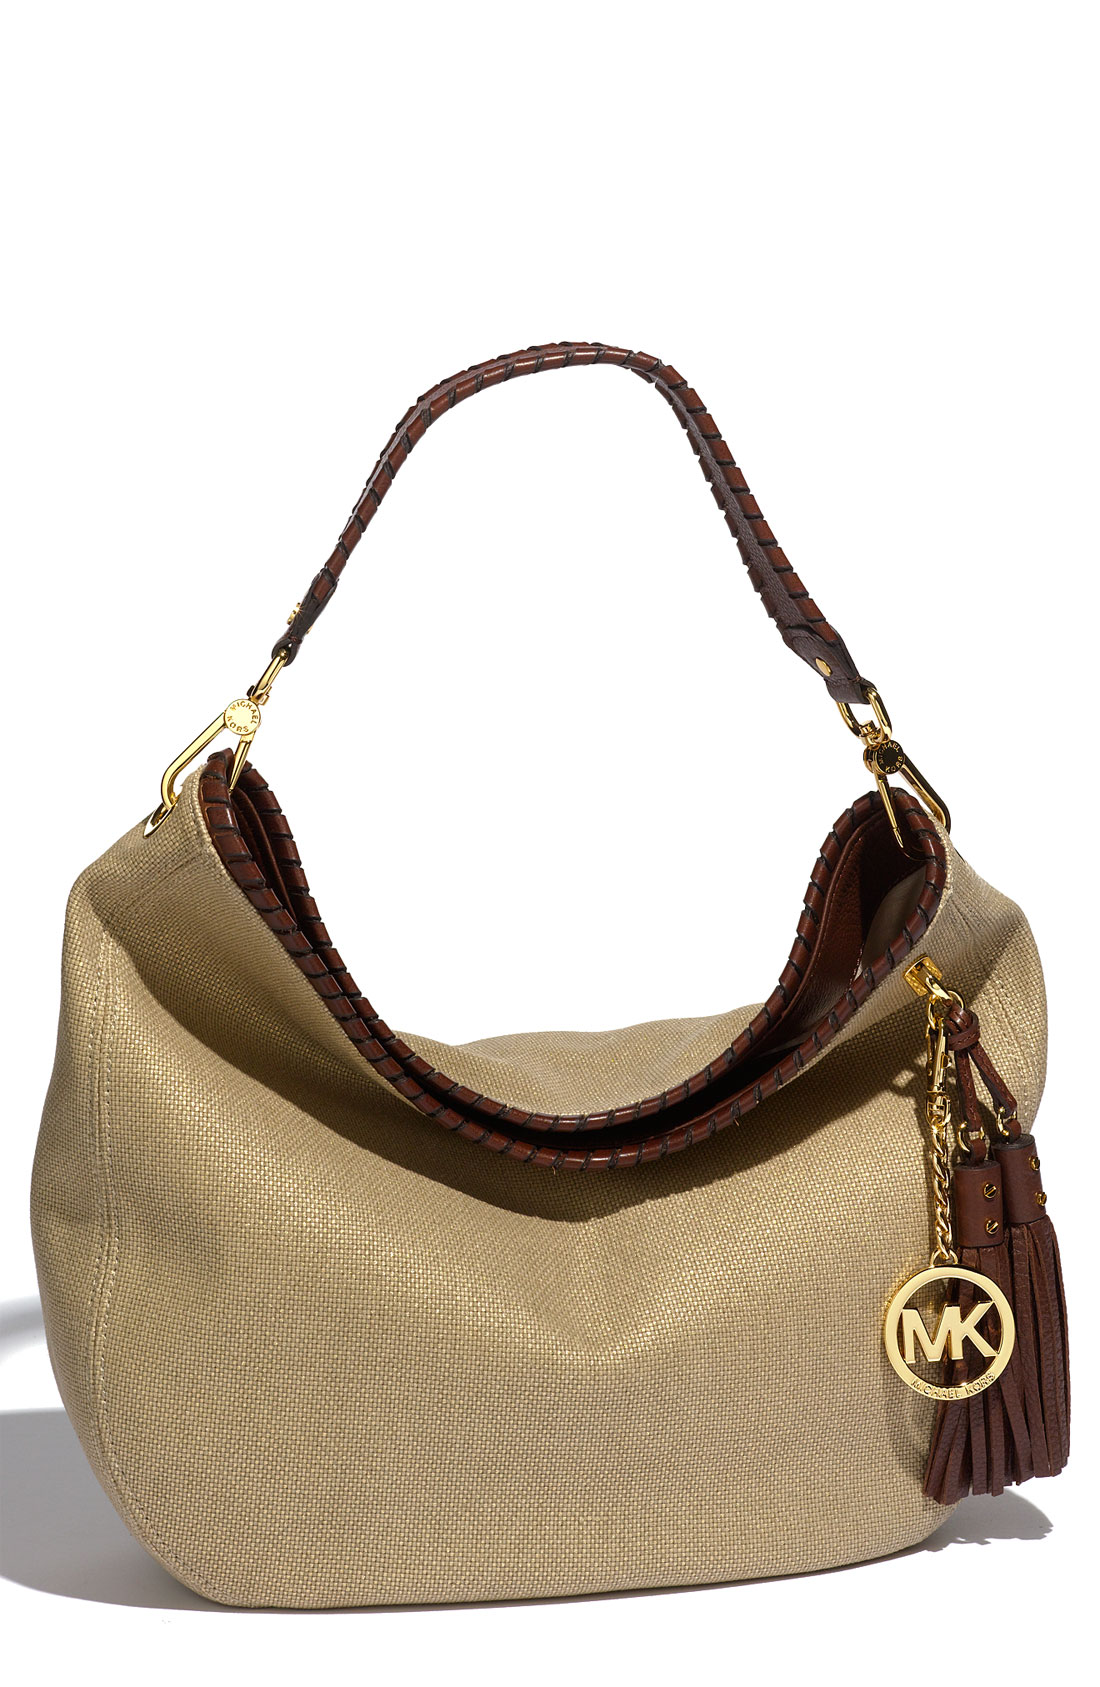 michael michael kors bennet large hobo in brown gold metallic lyst. Black Bedroom Furniture Sets. Home Design Ideas